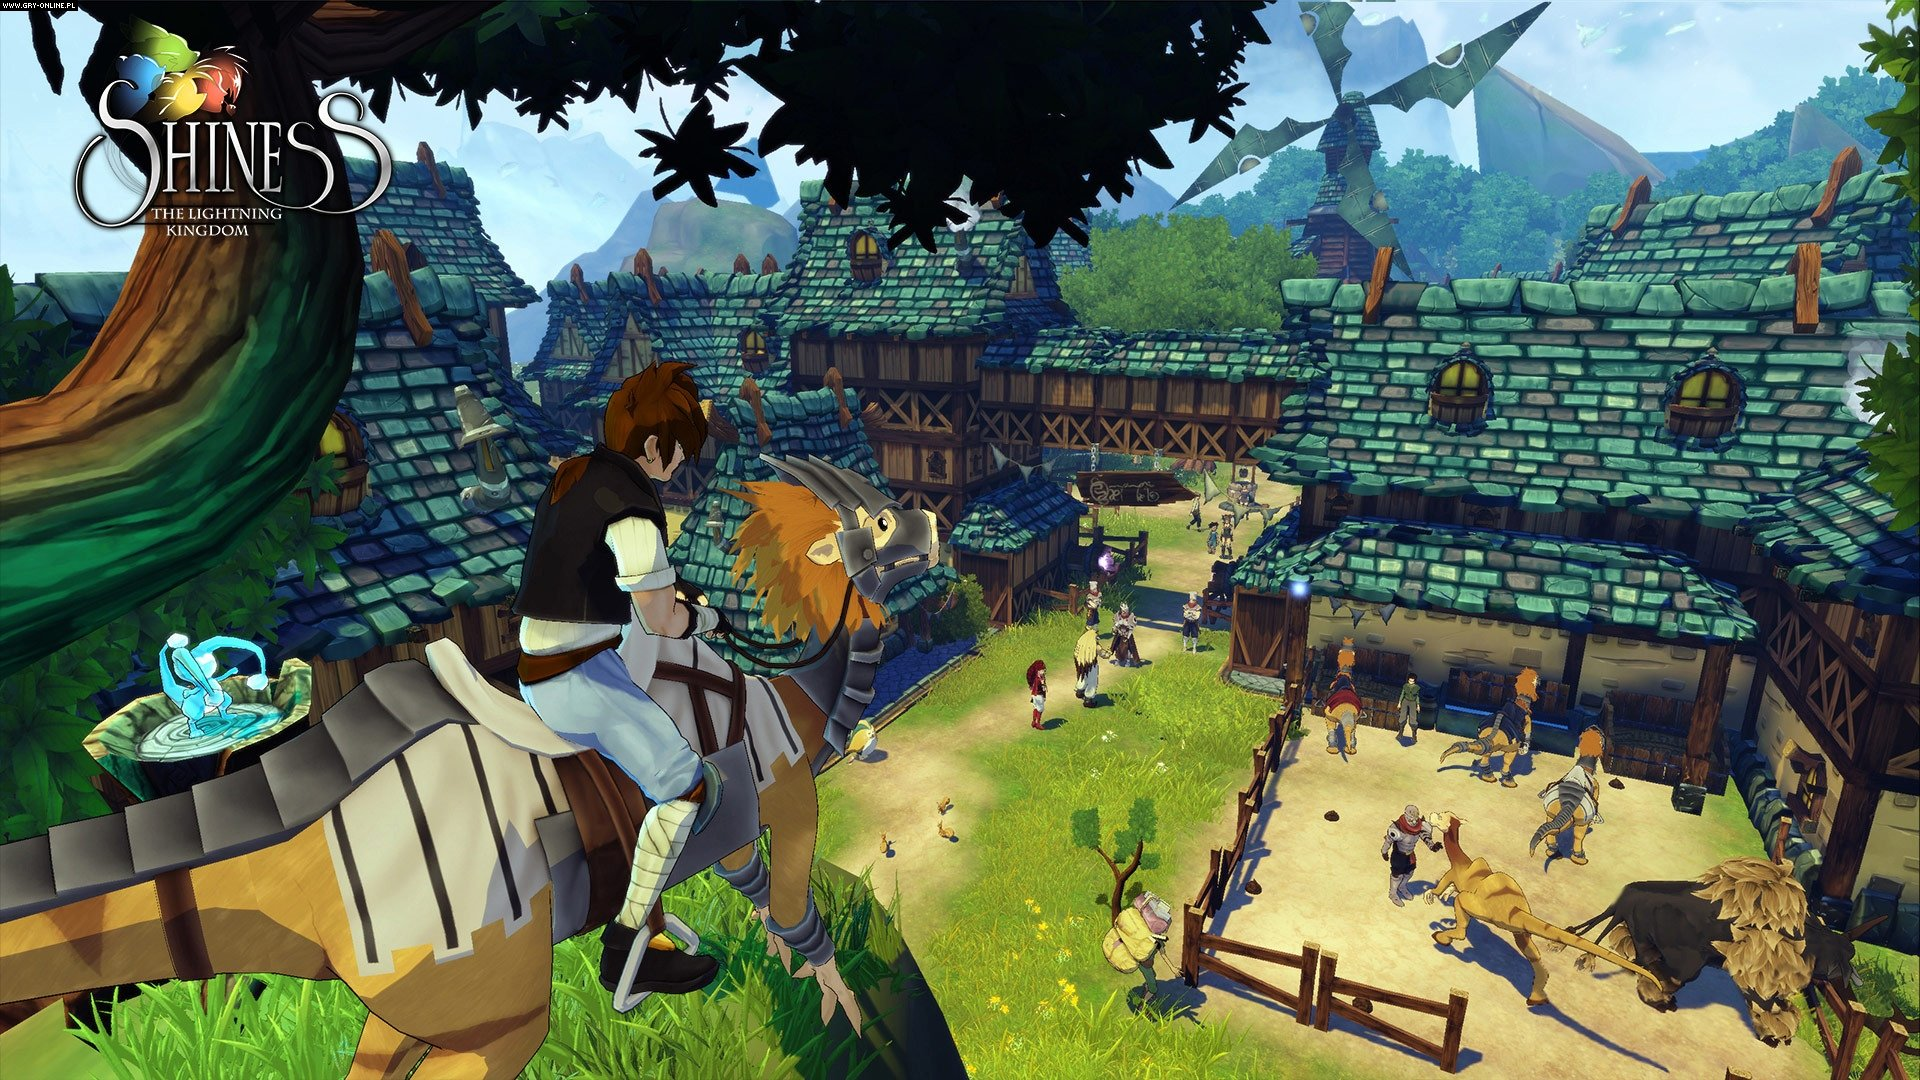 Shiness: The Lightning Kingdom XONE, PS4, PC, WiiU Games Image 7/12, Enigami, Focus Home Interactive